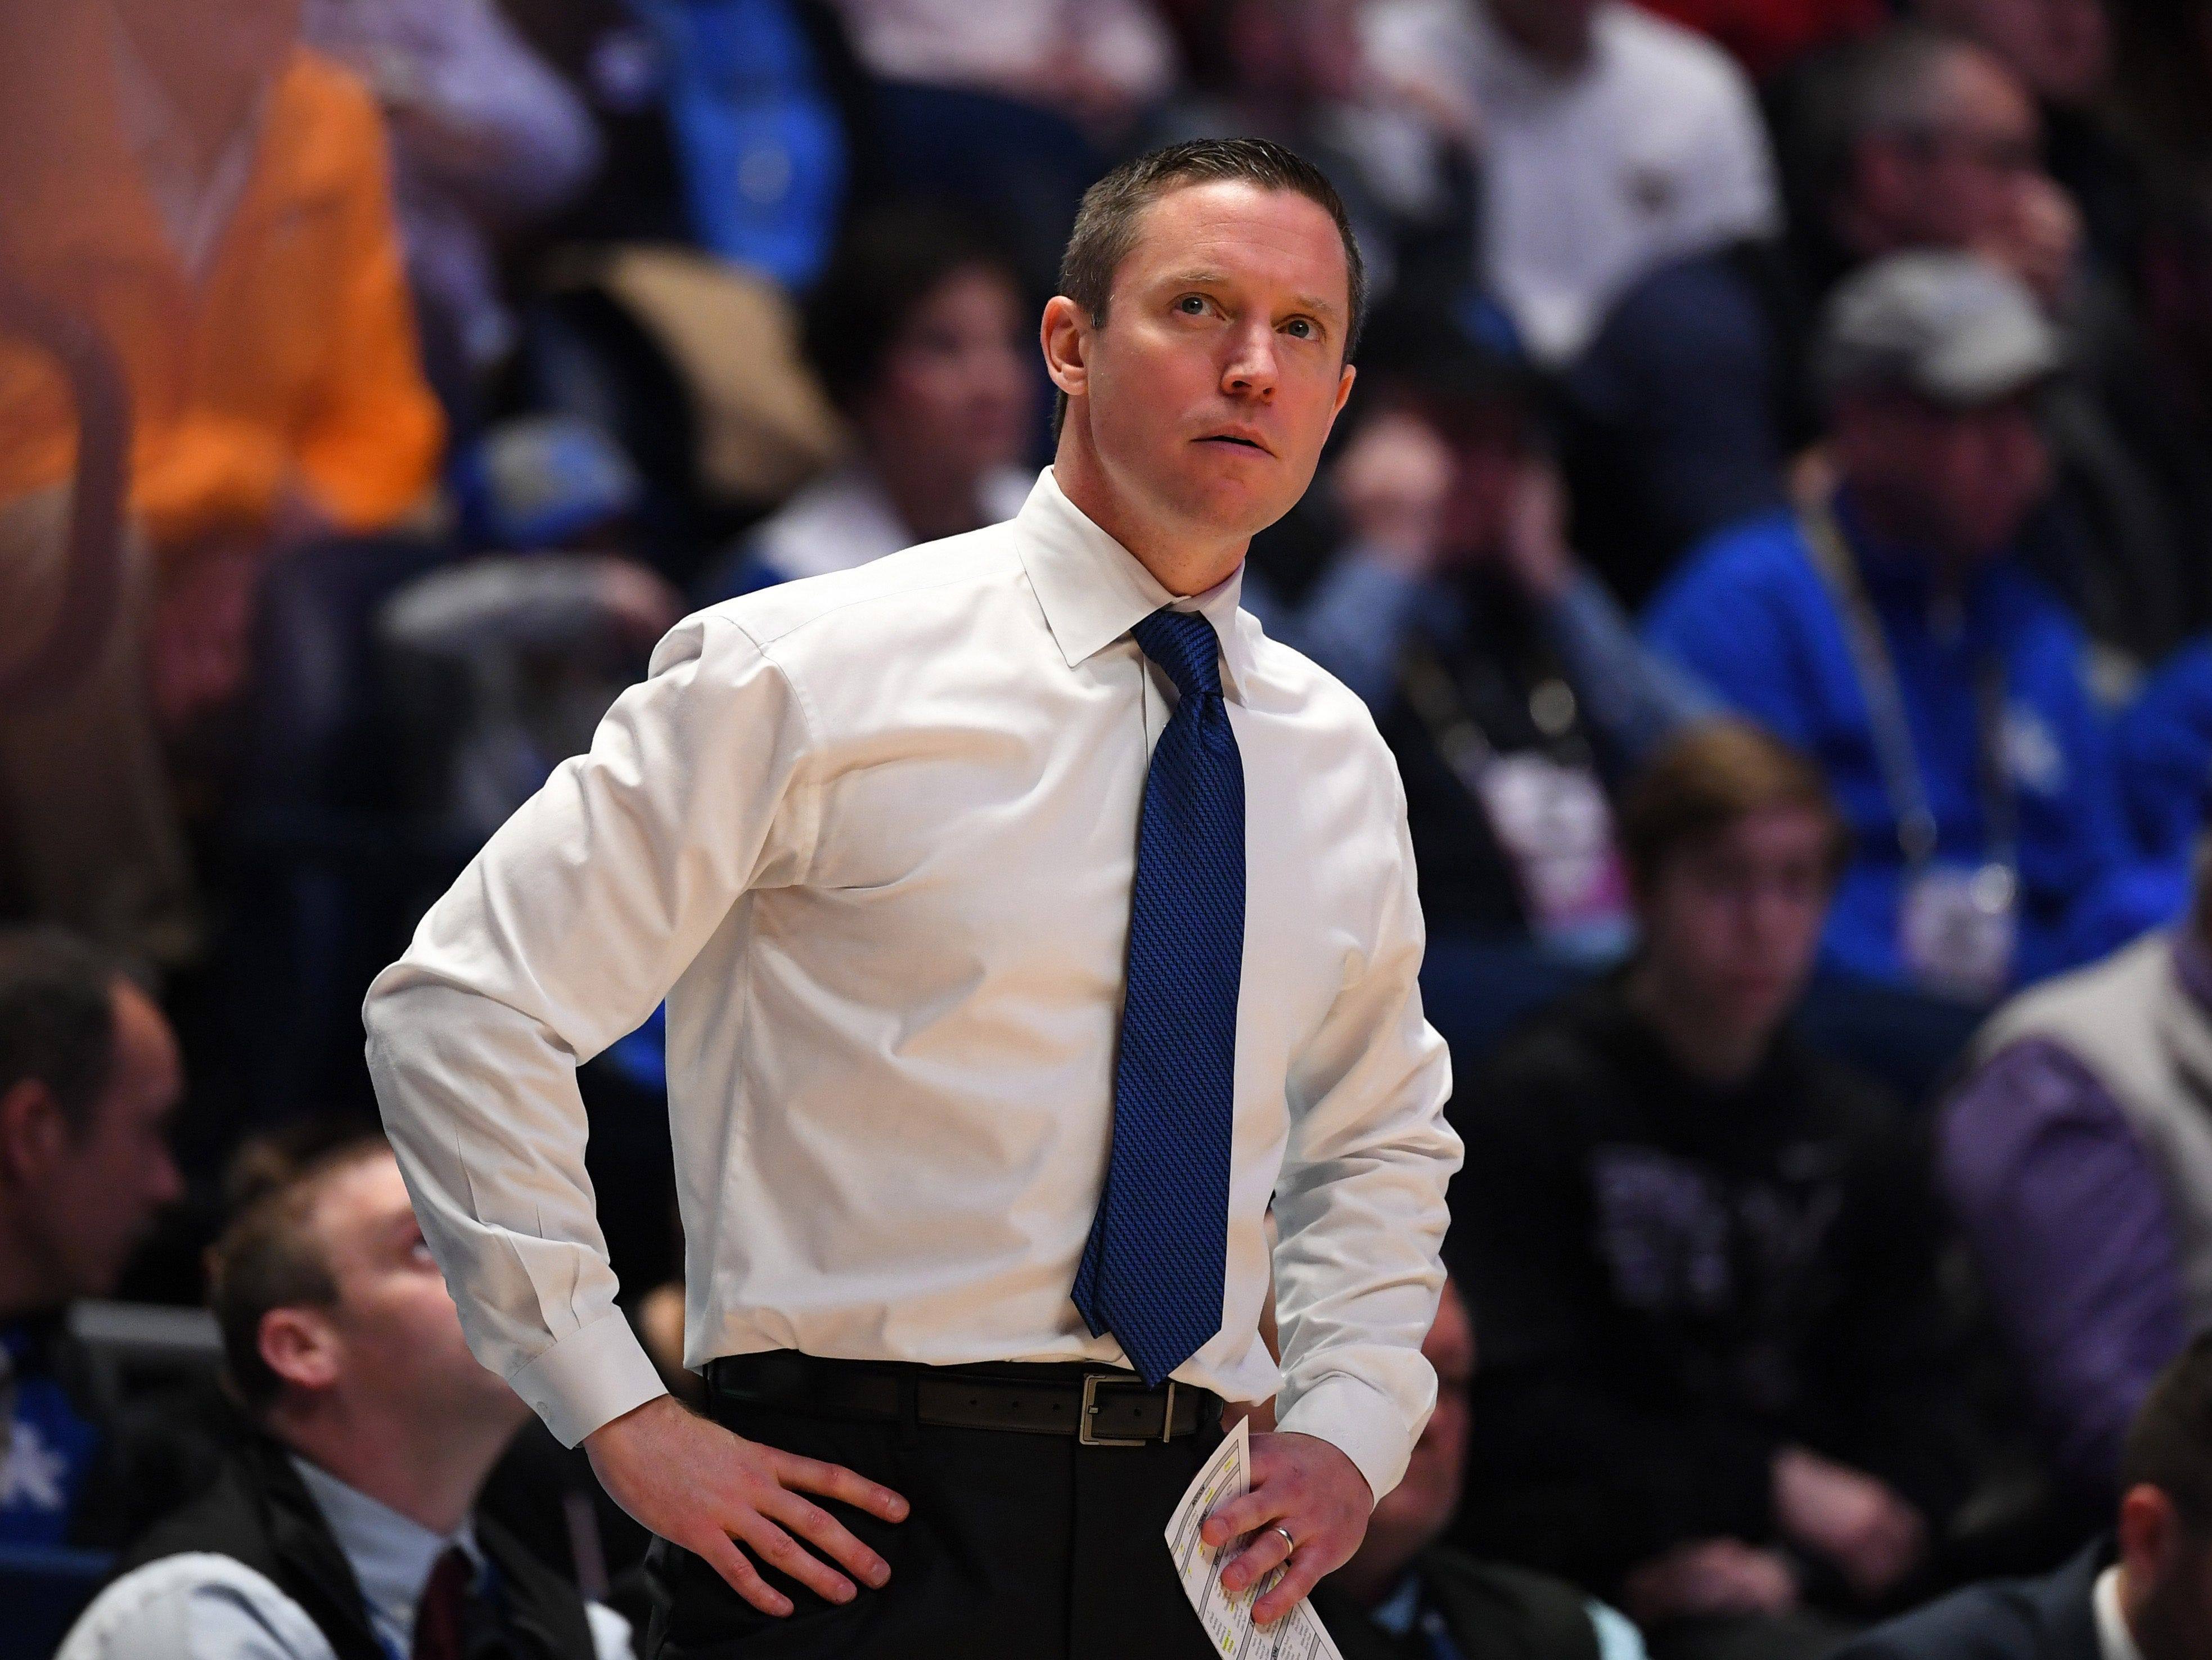 Mar 15, 2019; Nashville, TN, USA; Florida Gators head coach Mike White looks on from the sidelines against the LSU Tigers during the first half  of the SEC conference tournament at Bridgestone Arena. Mandatory Credit: Christopher Hanewinckel-USA TODAY Sports